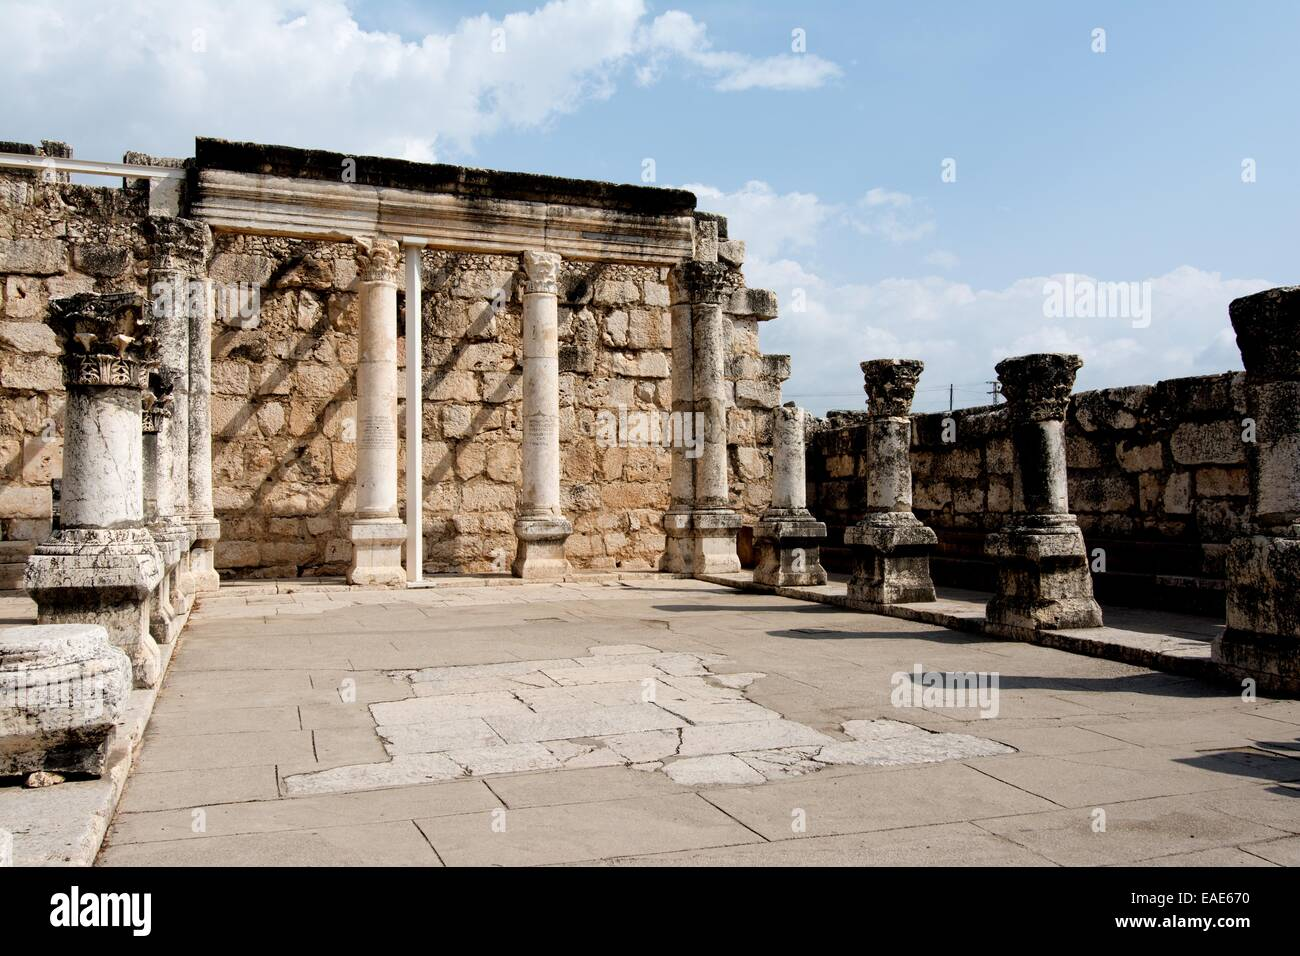 View of the Synagogue ruins, Capernaum, Galilee, Israel, Middle East. Stock Photo